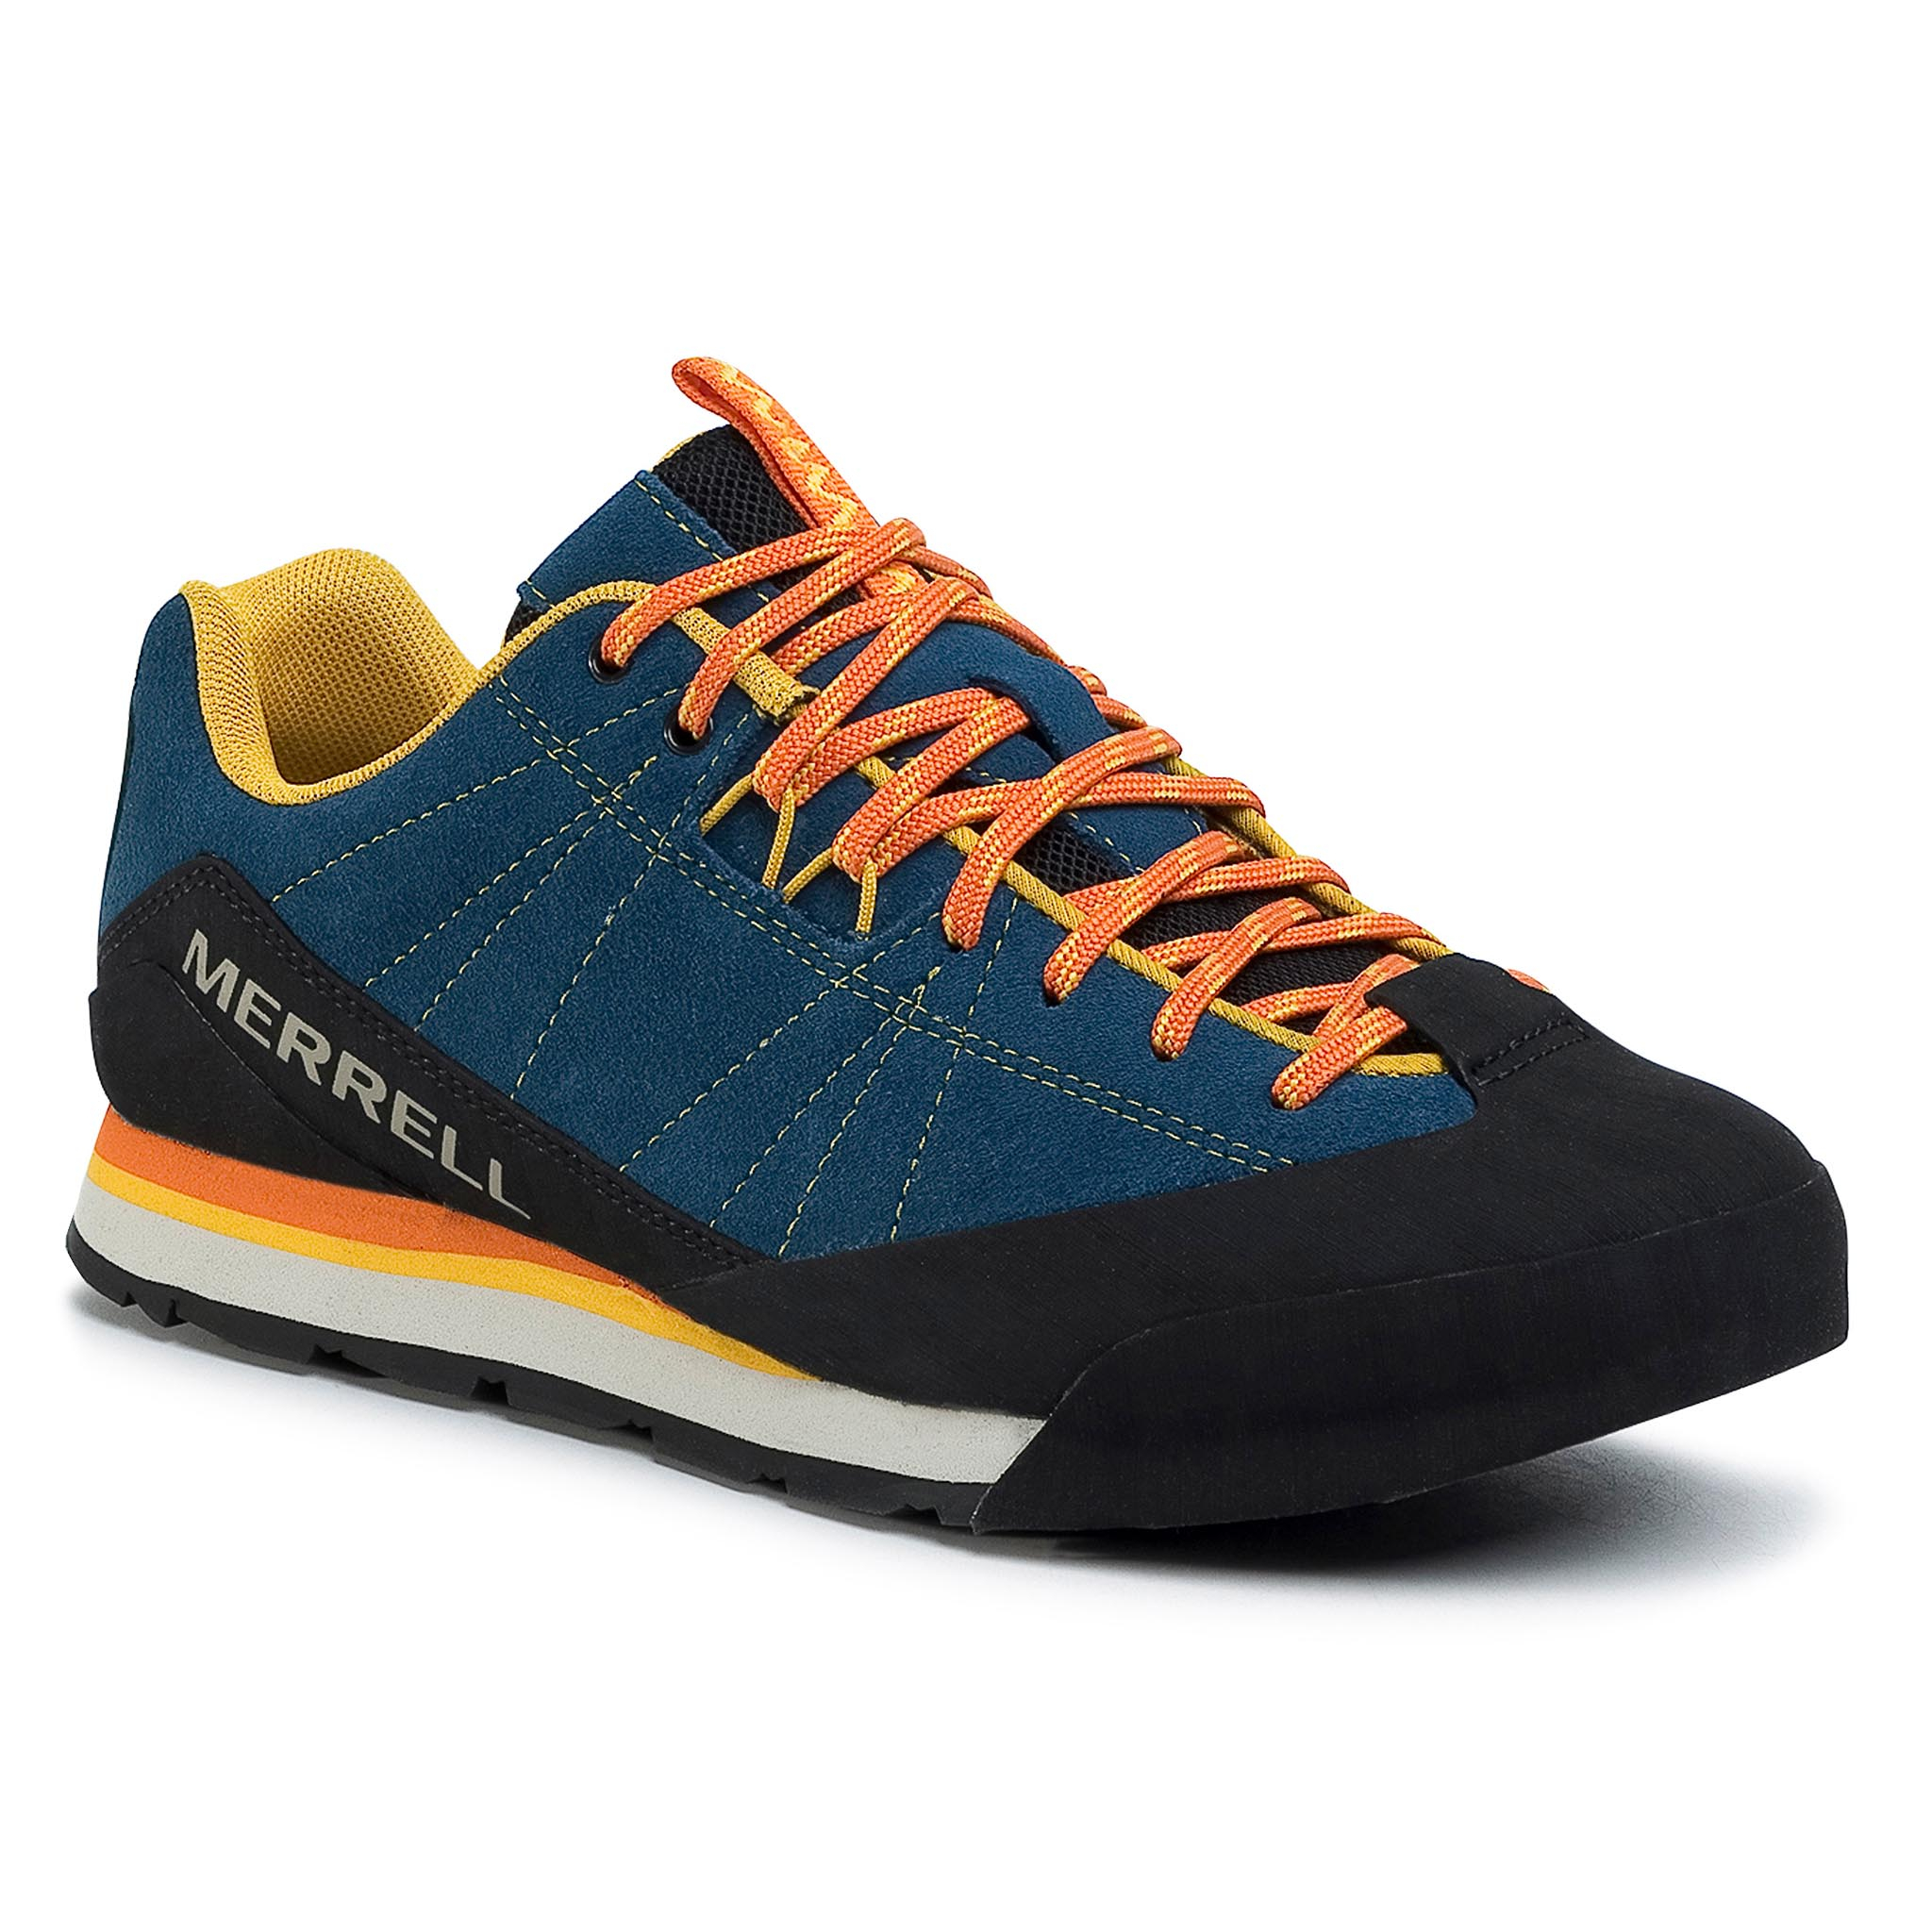 Trekkings Merrell - Catalyst Suede J000099 Sailor imagine epantofi.ro 2021